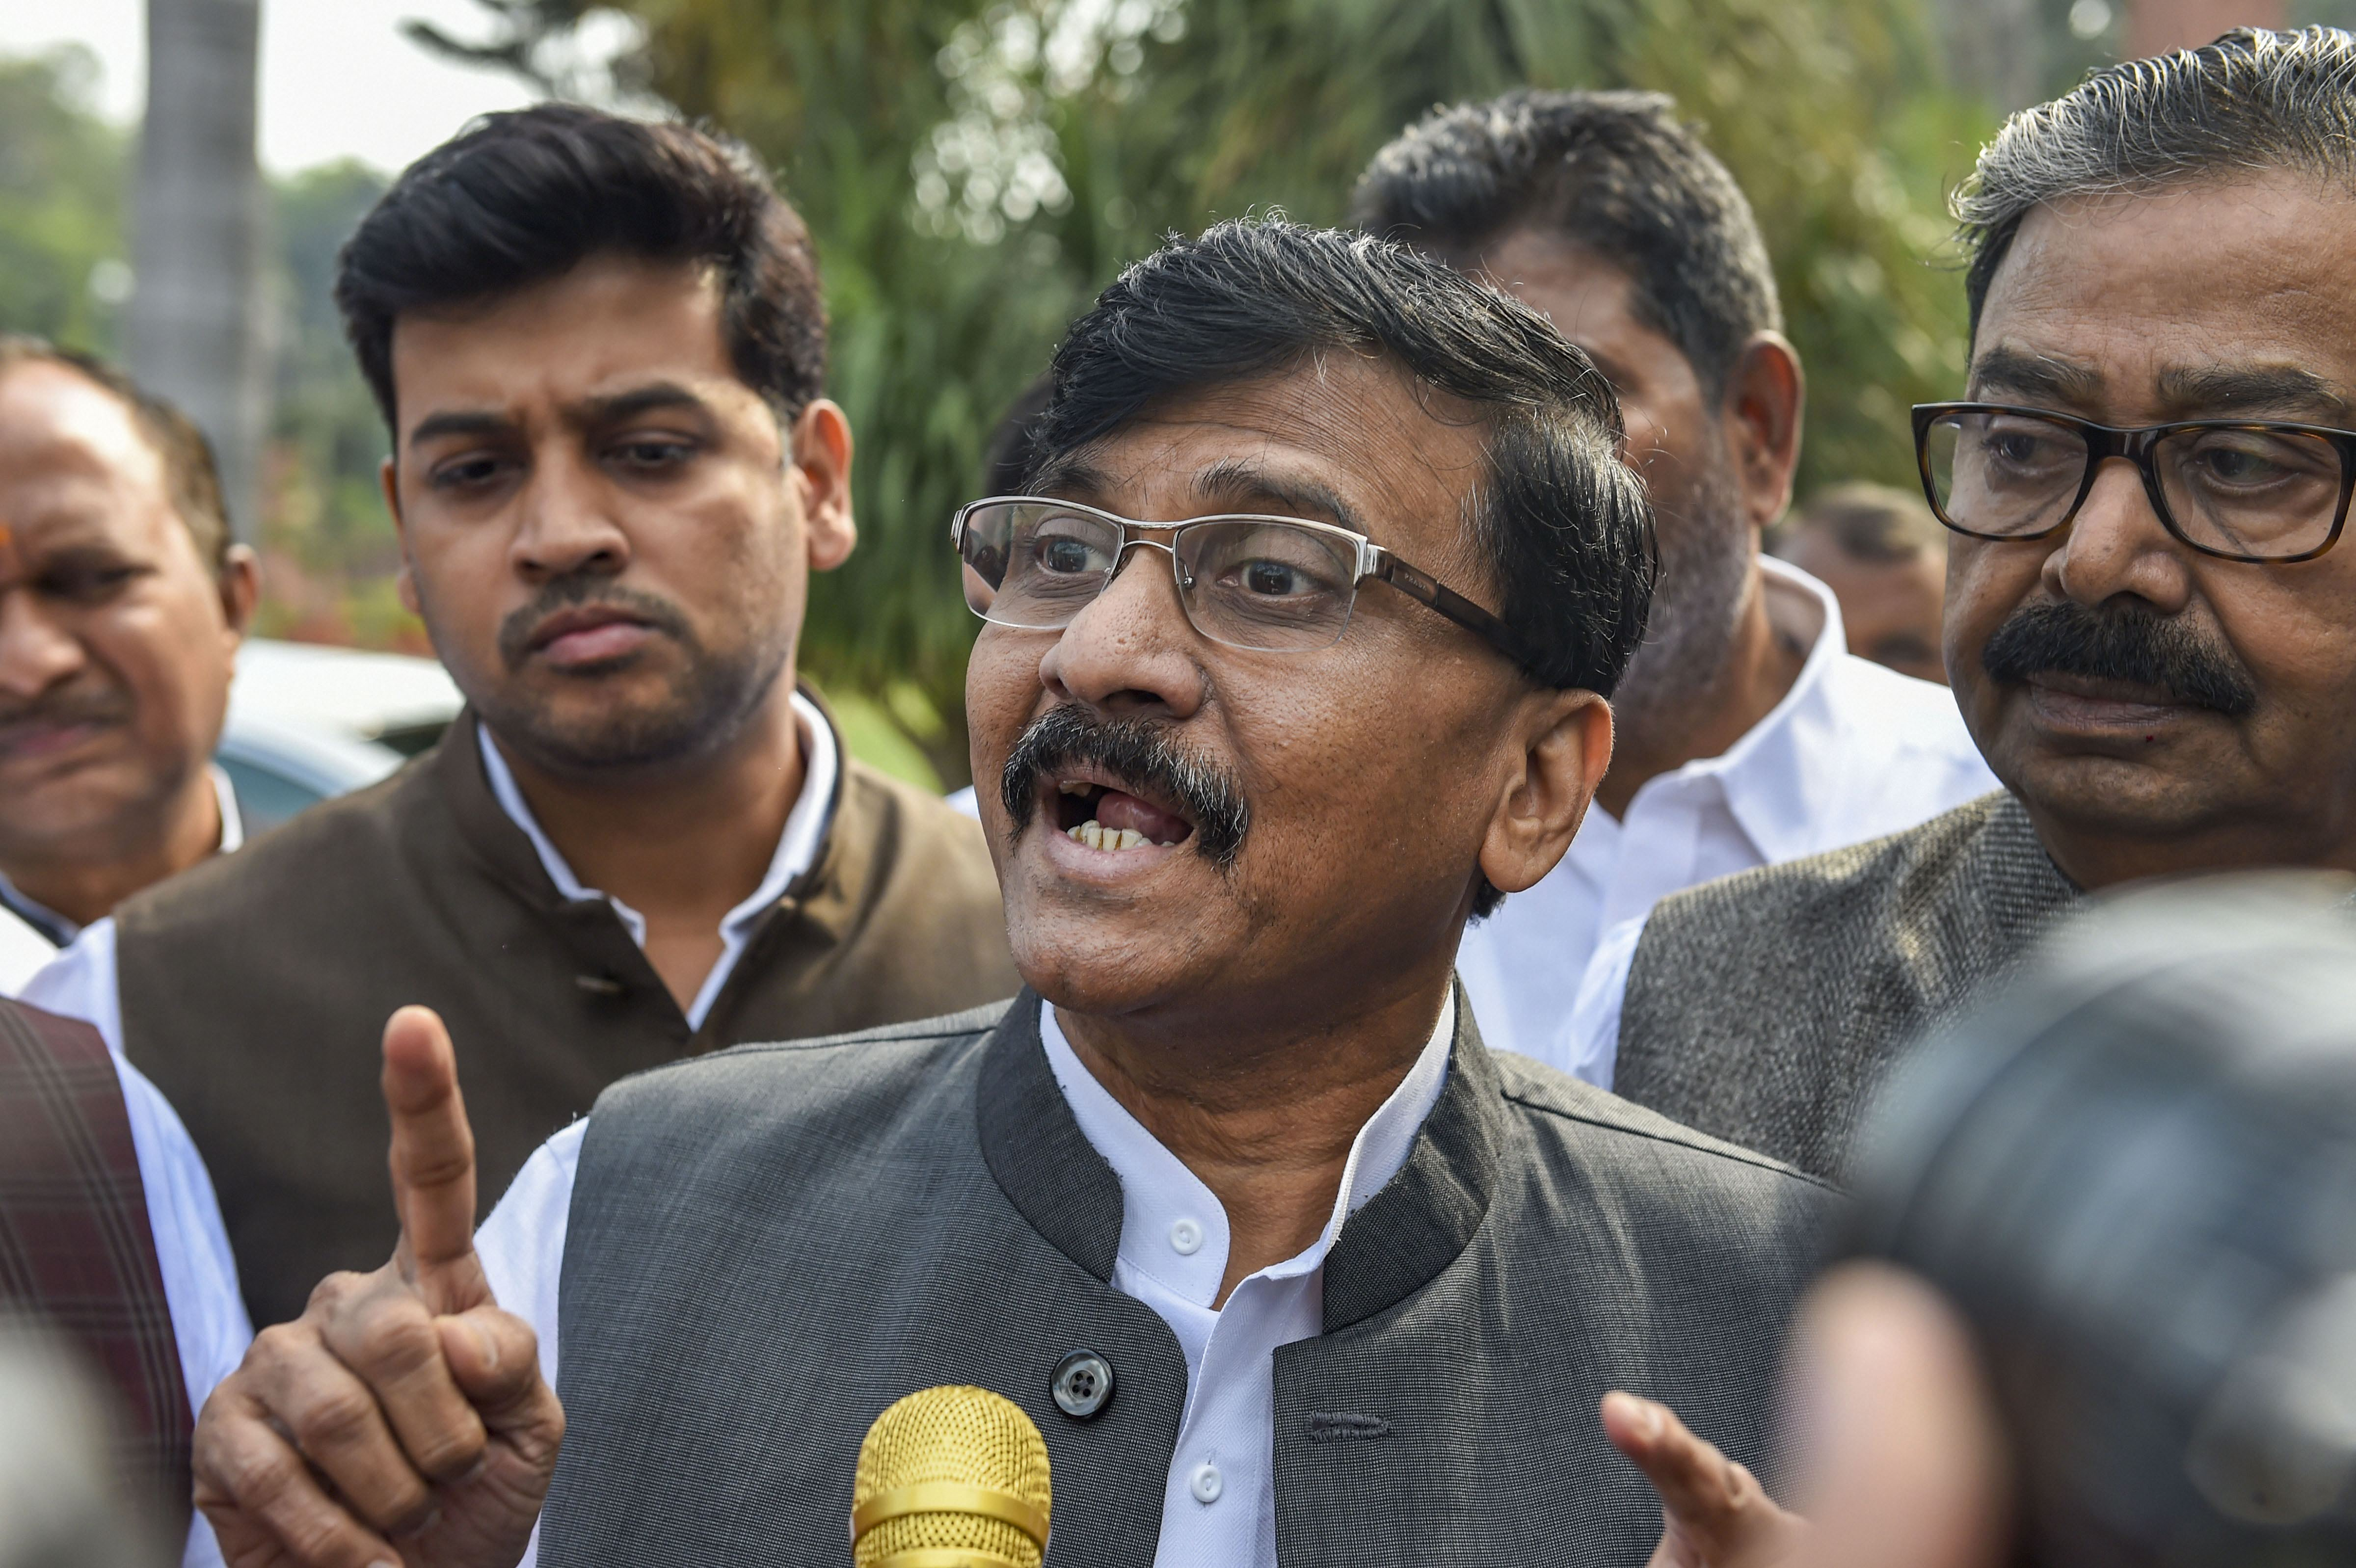 Shiv Sena MP Sanjay Raut addresses the media on the first day of the winter session of Parliament, in New Delhi, Monday, November. 18, 2019. He said on Wednesday that the Sena is inching towards government formation in Maharashtra.